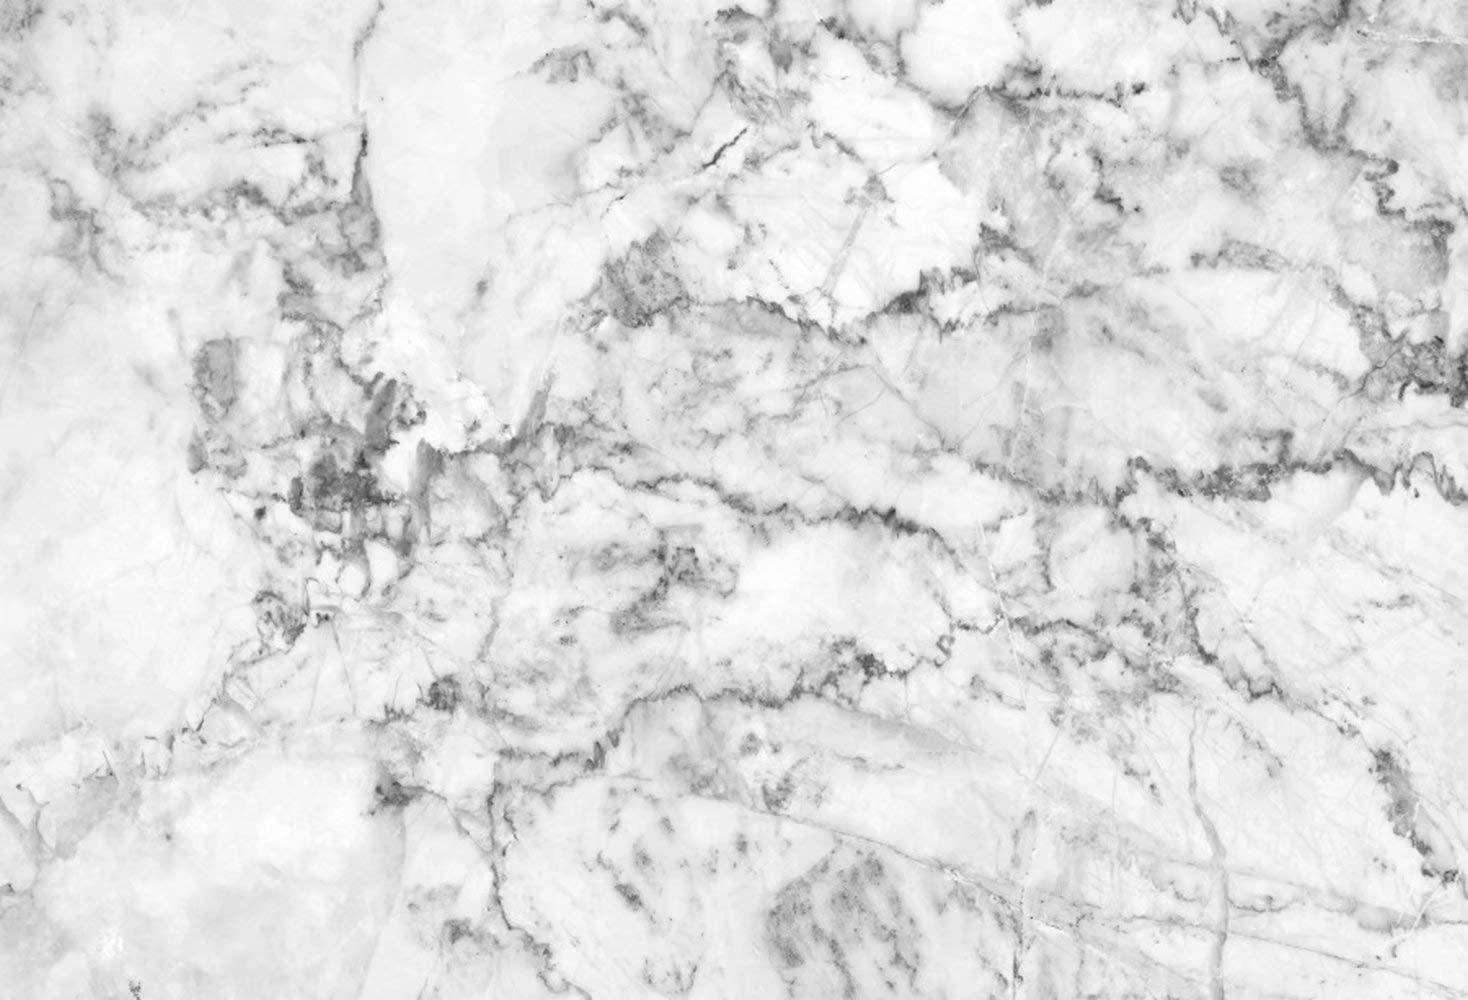 Grey Marble with Black Texture Self Portrait Wedding Baby Photography Backgrounds Customized Photographic Backdrops for Photo Studio